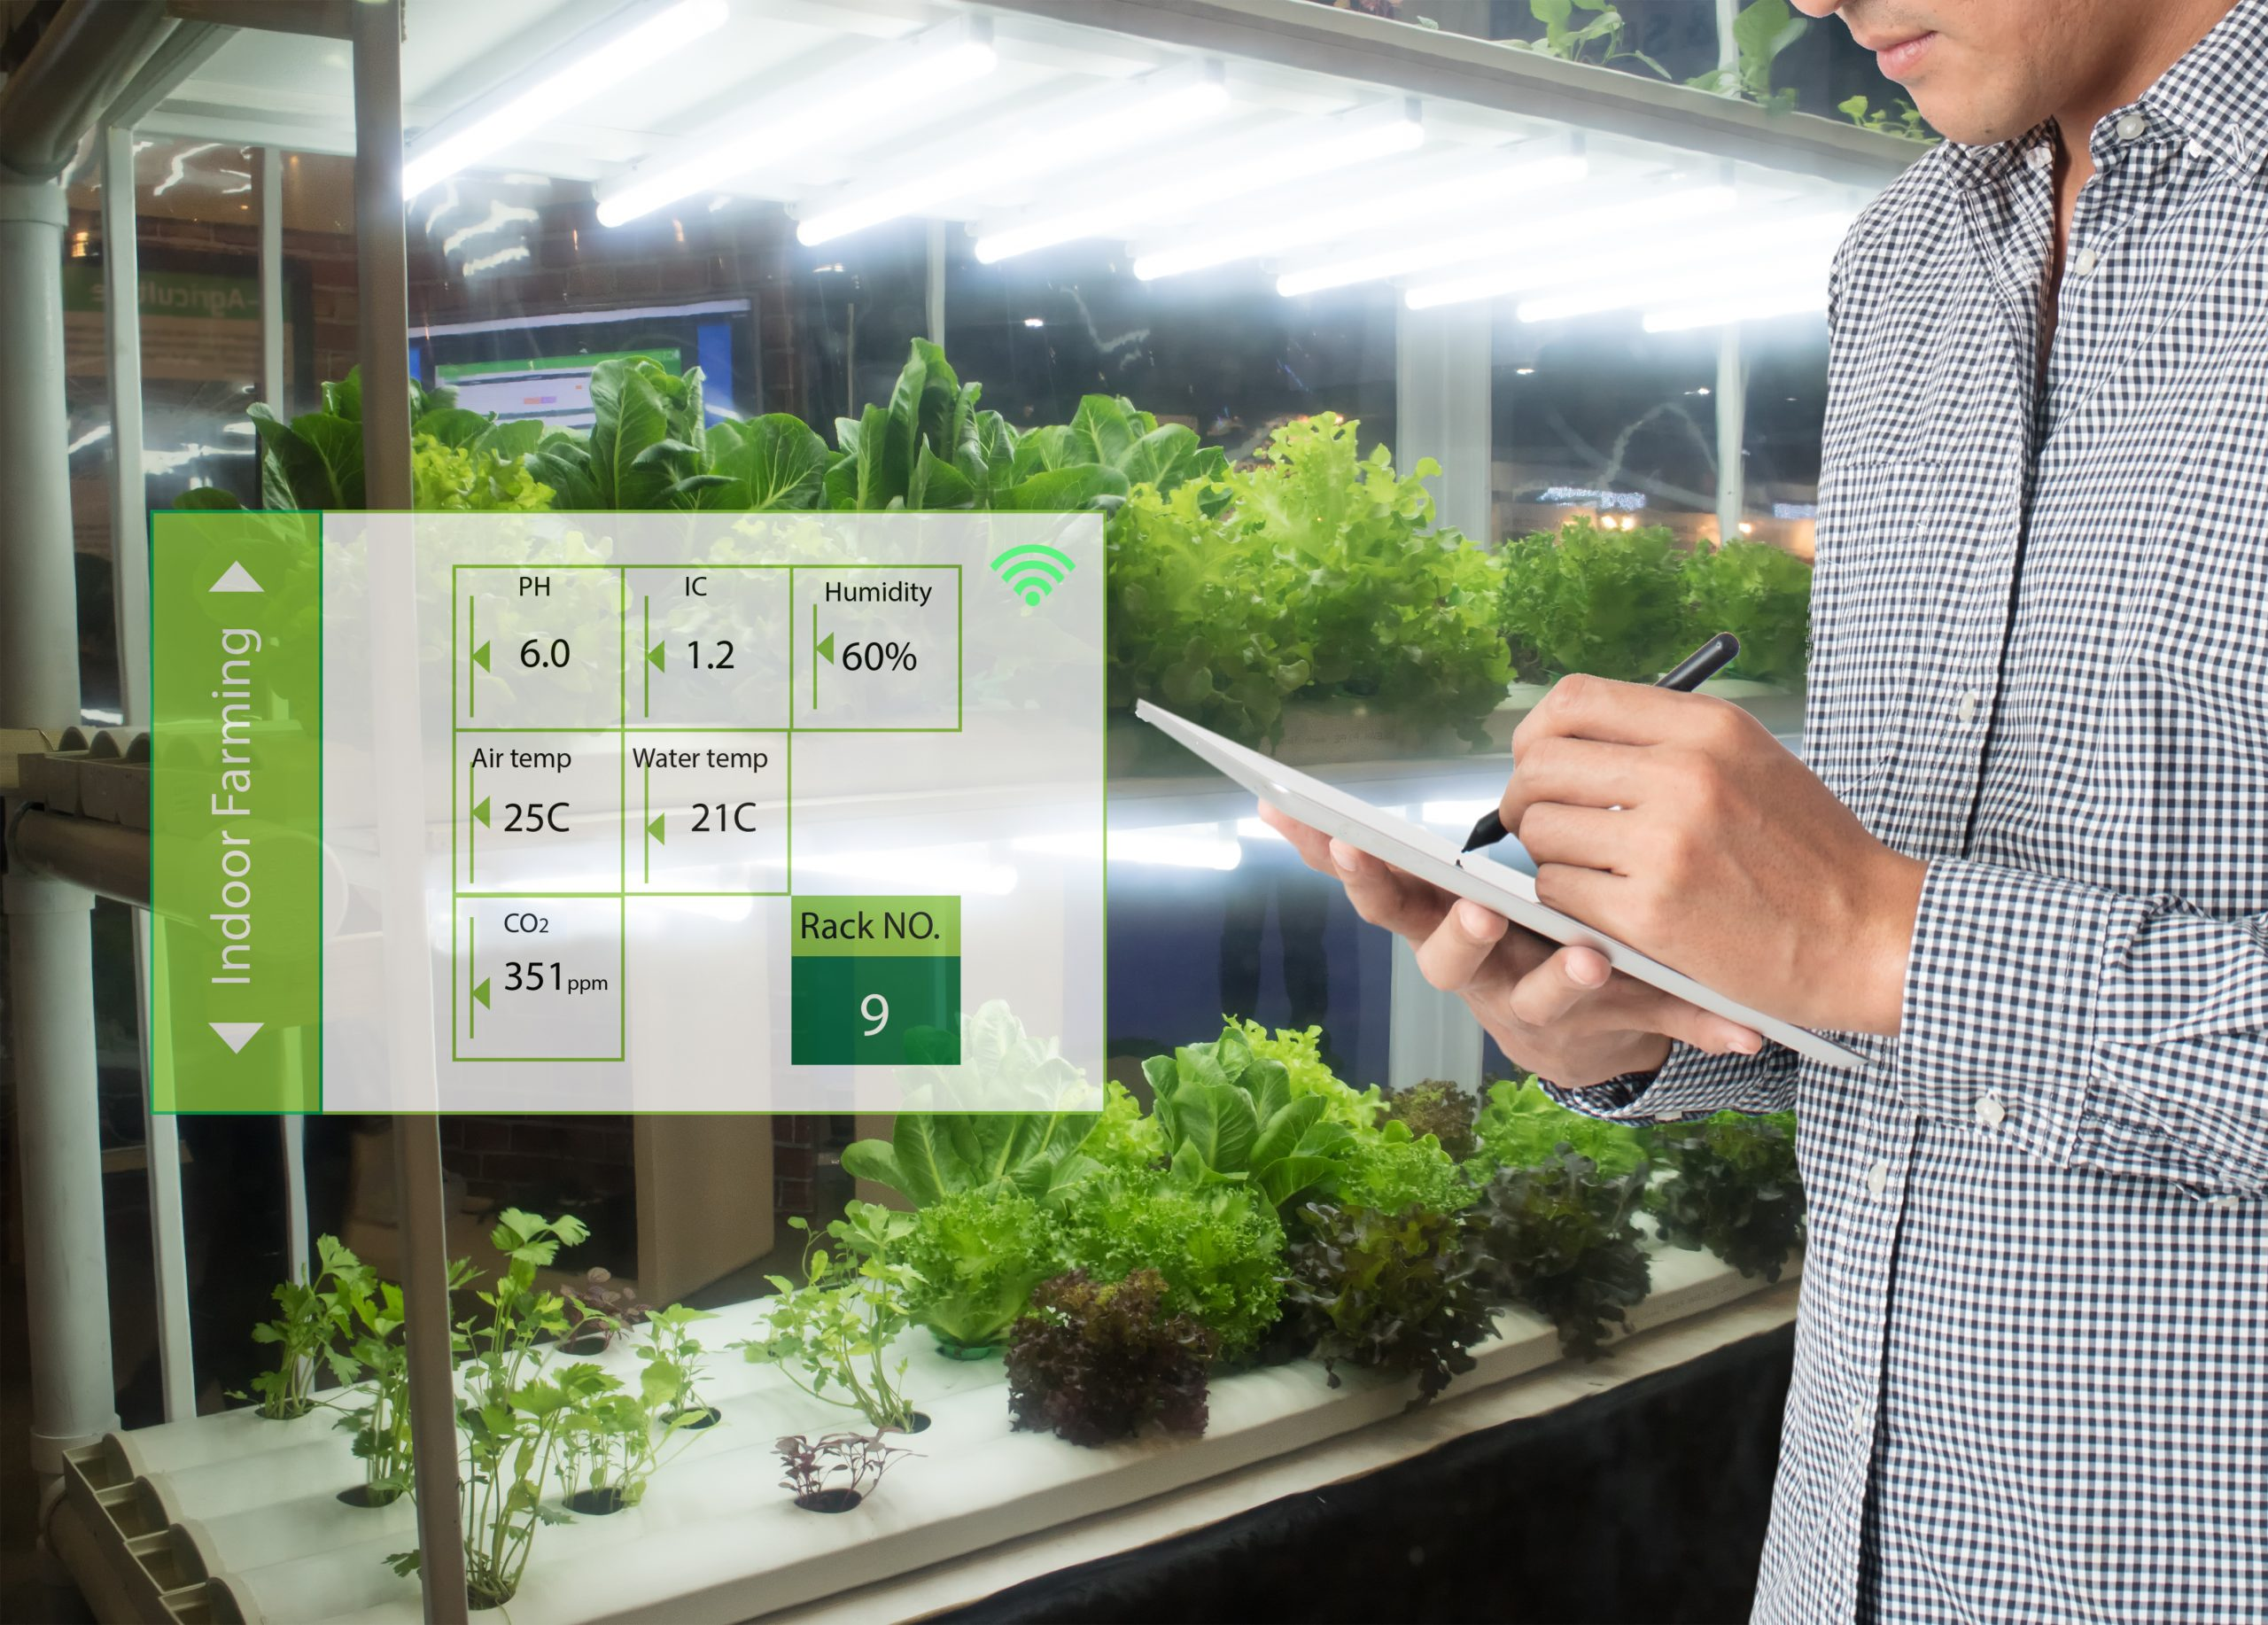 A farmer makes notes on a tablet while analysing the health and growth status of plants in a vertical farm.